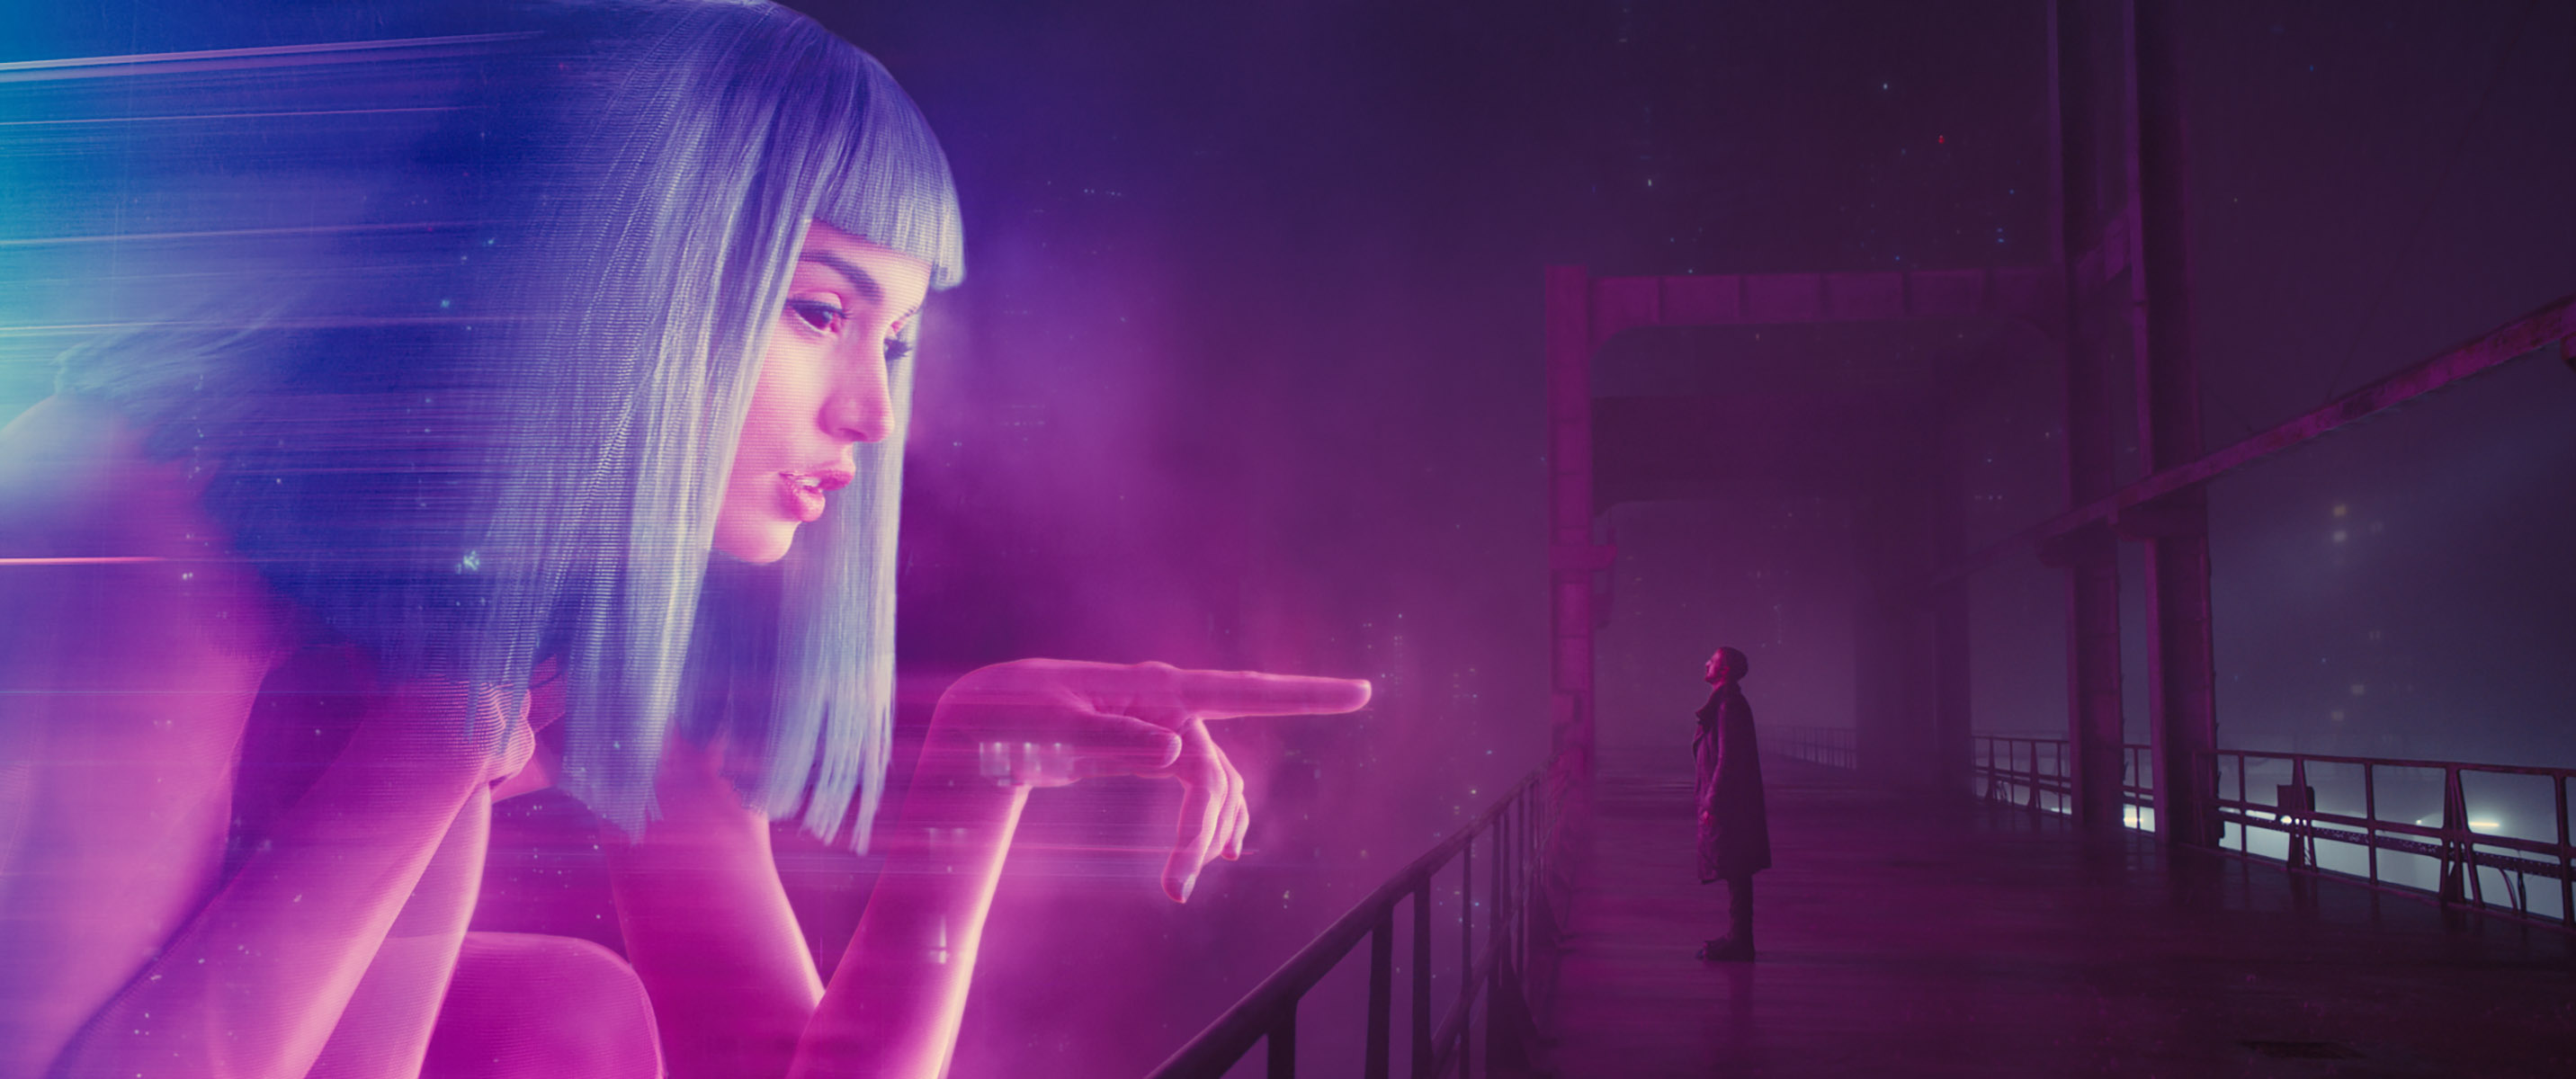 blade runner visuals